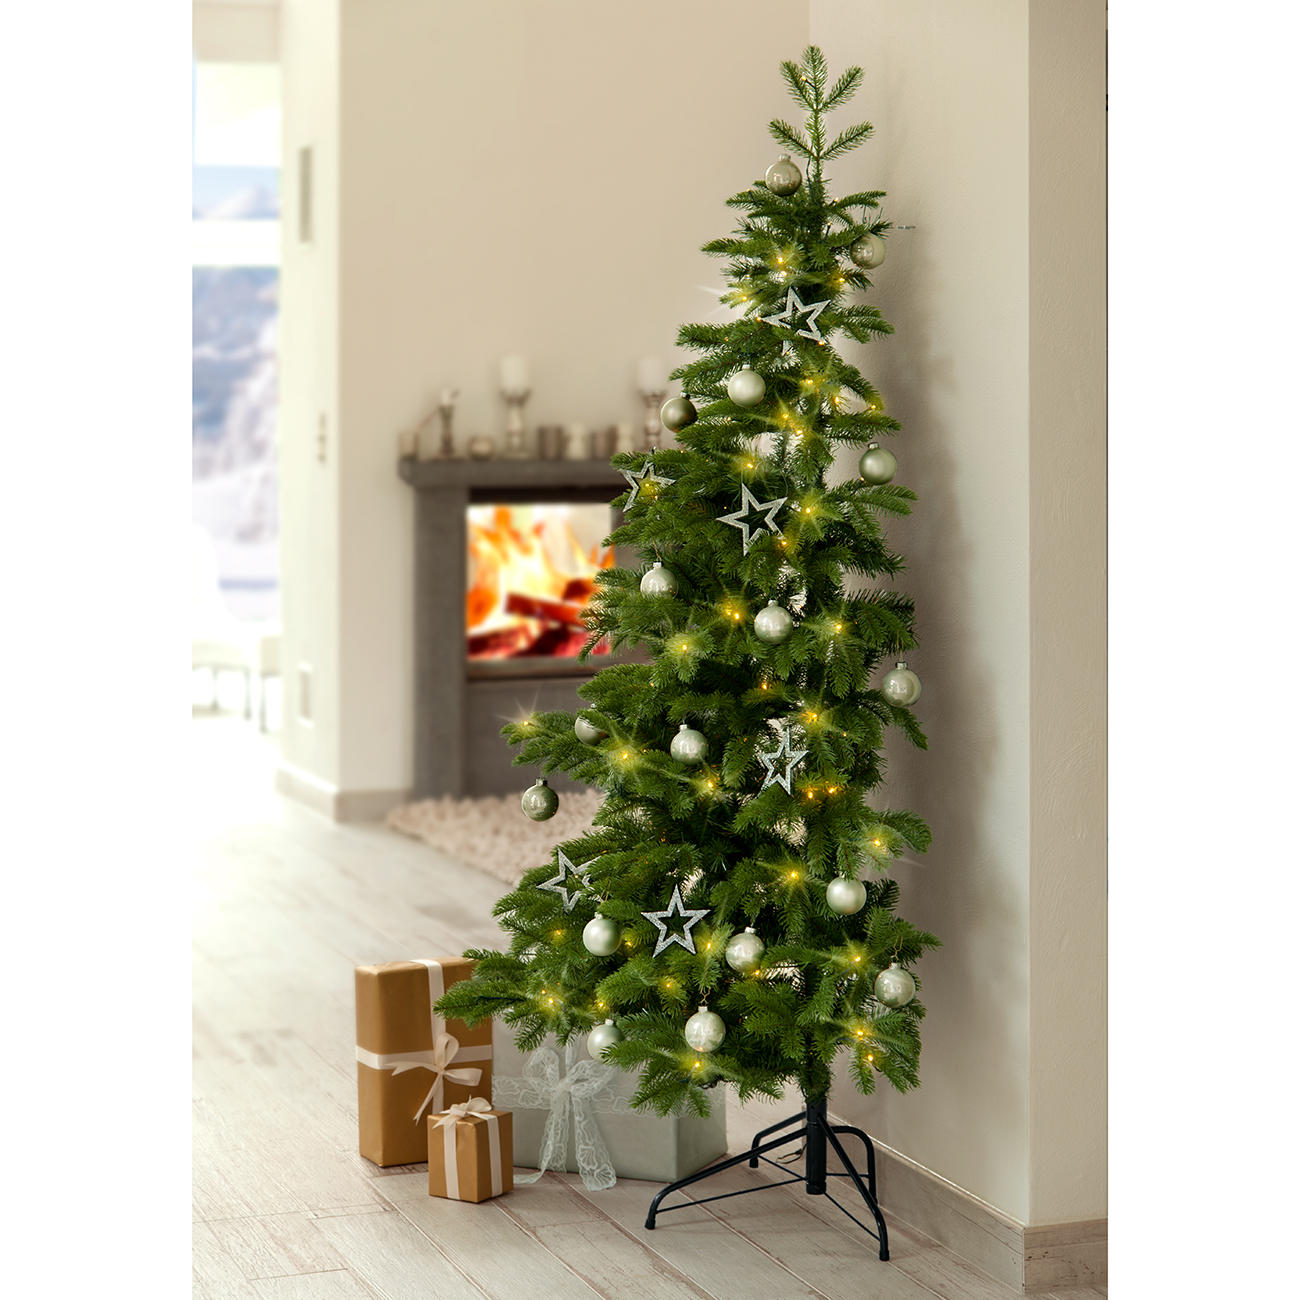 demi christmas tree big beautiful realistic looking in practical half sized design - Half Wall Christmas Tree